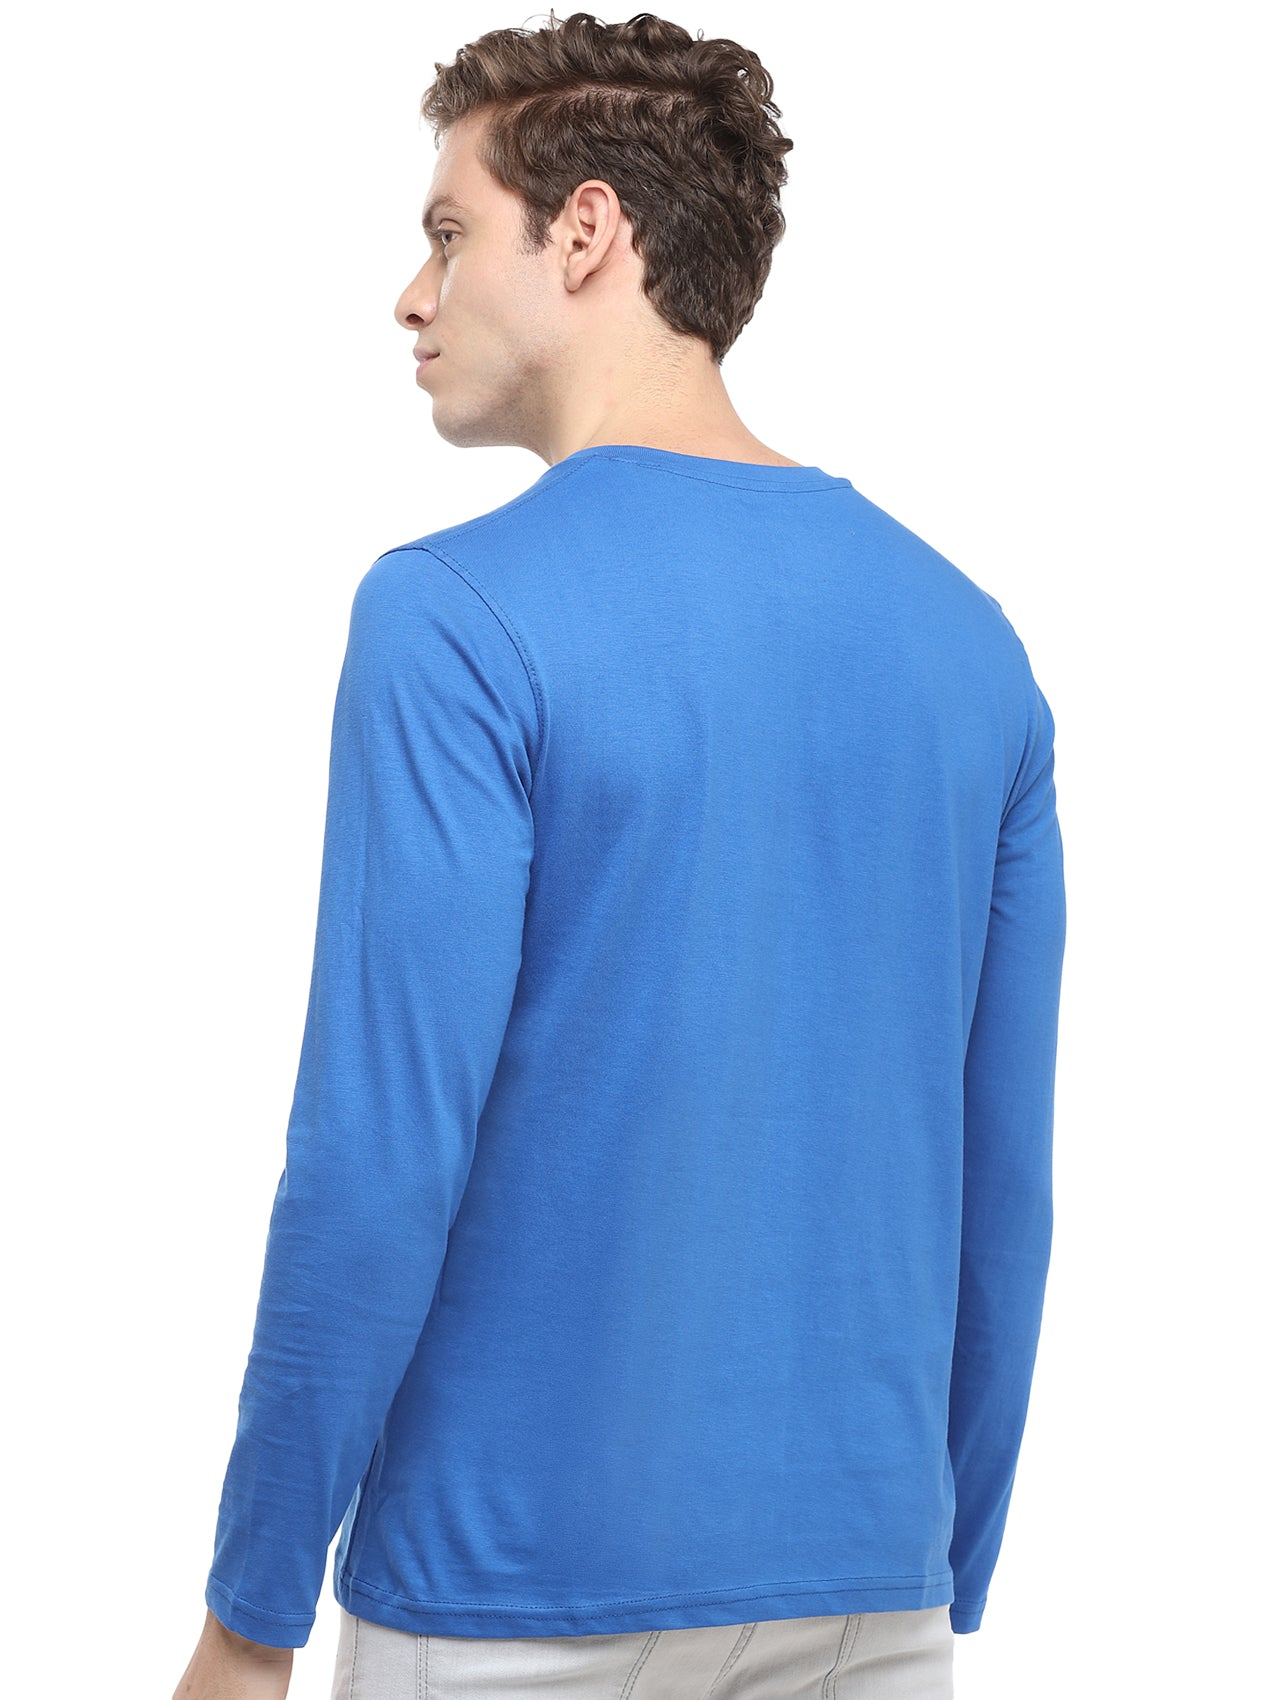 Rock Hooper - Men's Regular Fit Full Sleeve Henley Neck Classic Blue T-shirt